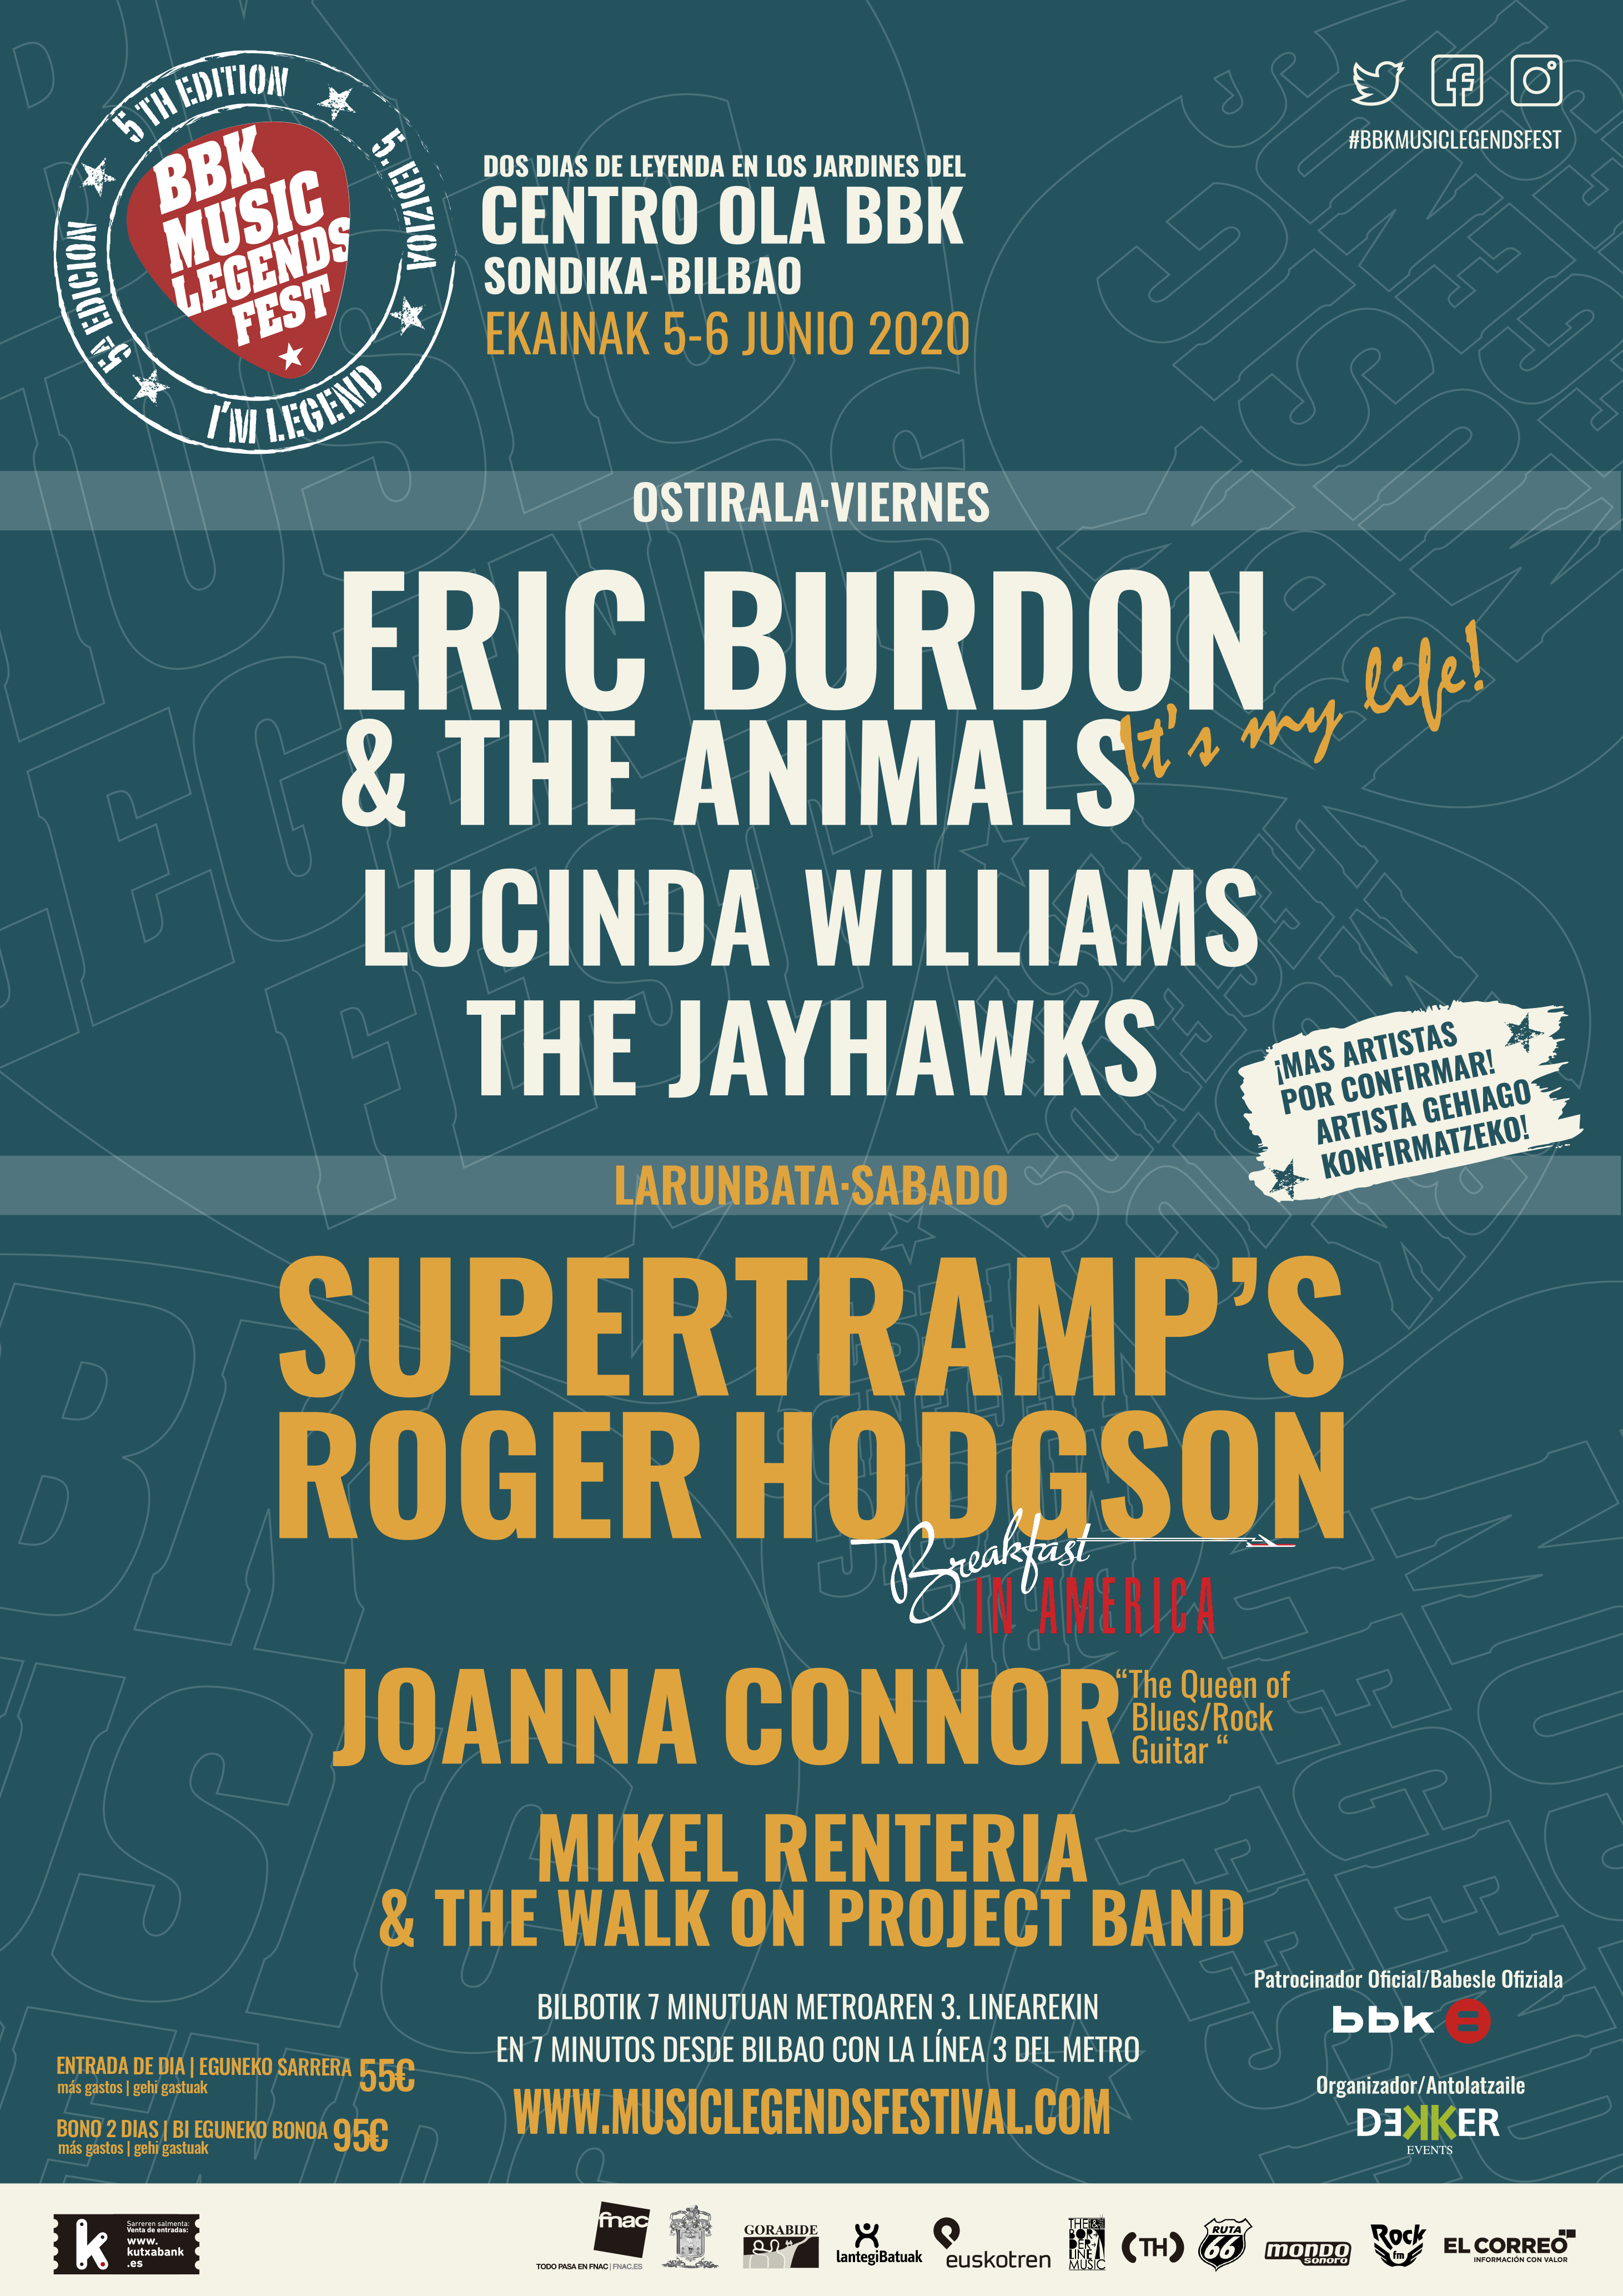 BBK Music Legends Festival 2020: ¡Eric Burdon & The Animals, Lucinda Williams y Mikel Renteria se unen al cartel!  - Página 2 Cartel-6-artistas-2020_baja-1